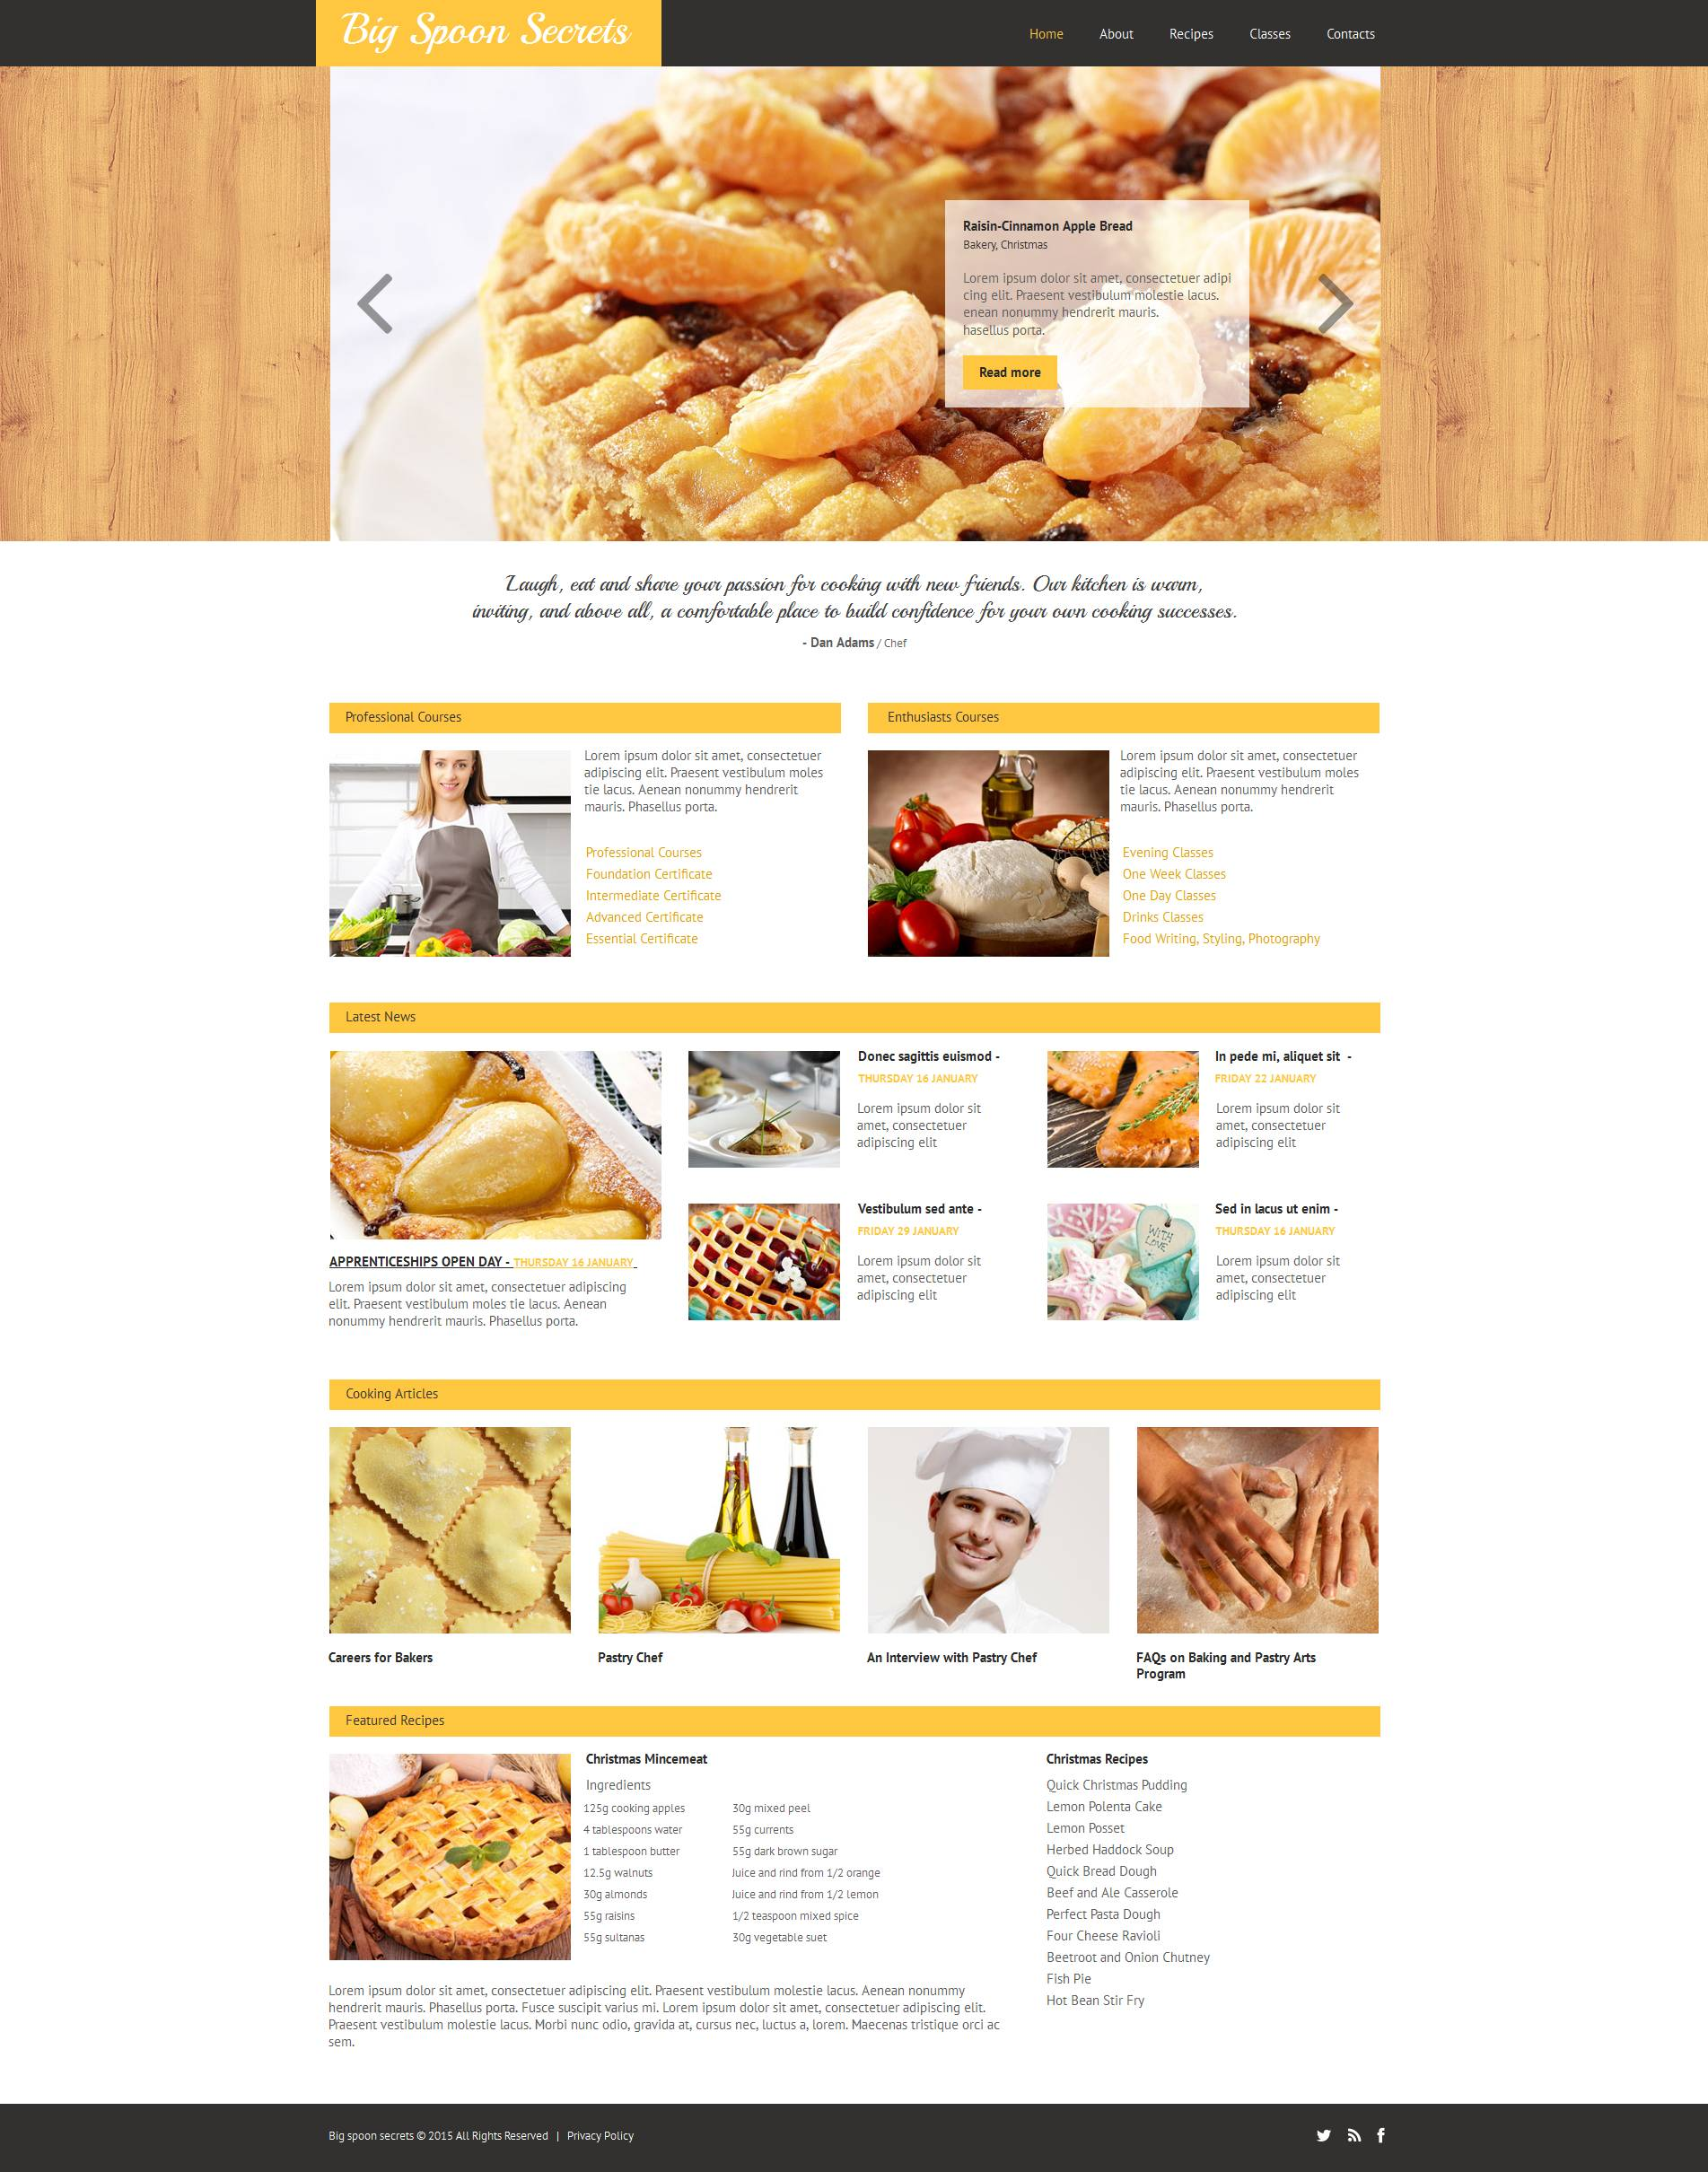 The Big Spoon Secrets Cooking School Moto CMS HTML Design 53215, one of the best Moto CMS HTML templates of its kind (education), also known as Big Spoon Secrets cooking school Moto CMS HTML template, cook Moto CMS HTML template, culinary Moto CMS HTML template, academy Moto CMS HTML template, education Moto CMS HTML template, prices Moto CMS HTML template, classes Moto CMS HTML template, chef Moto CMS HTML template, instructor Moto CMS HTML template, instructors Moto CMS HTML template, calendar Moto CMS HTML template, courses Moto CMS HTML template, food Moto CMS HTML template, dish Moto CMS HTML template, dishes and related with Big Spoon Secrets cooking school, cook, culinary, academy, education, prices, classes, chef, instructor, instructors, calendar, courses, food, dish, dishes, etc.